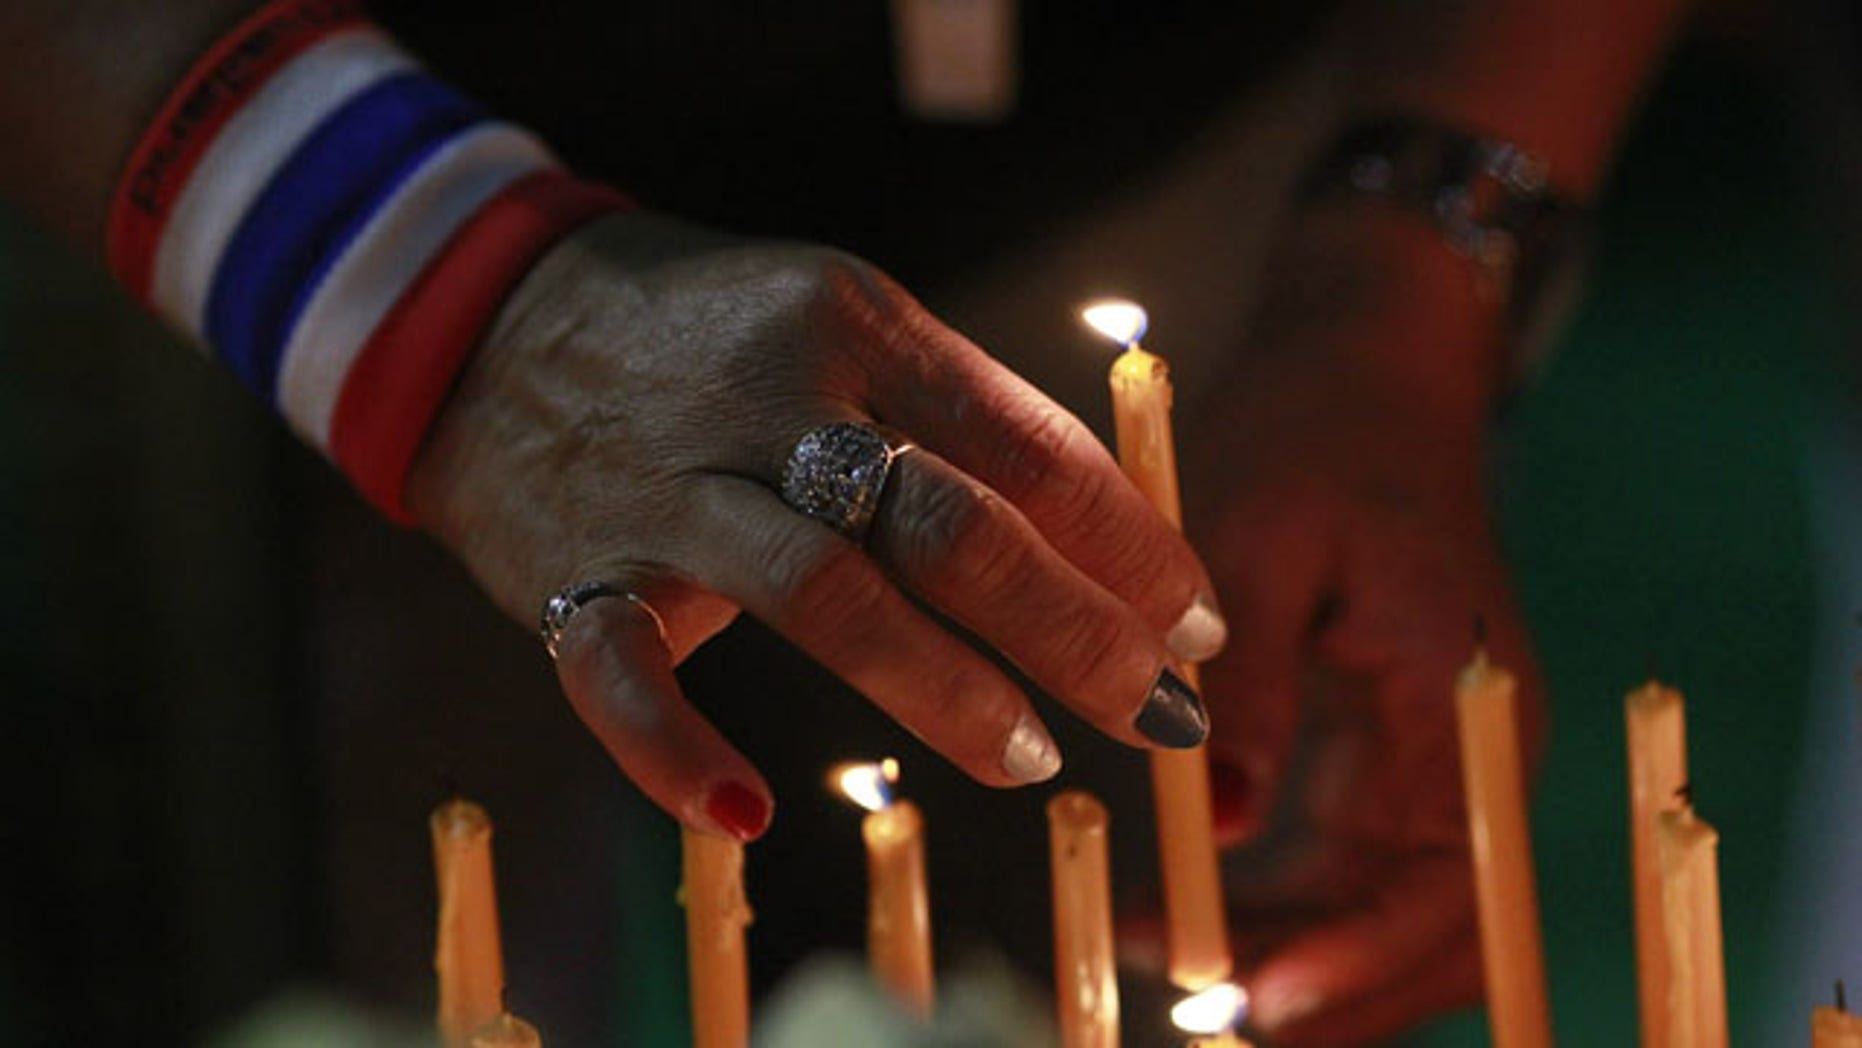 January 18, 2014: An anti-government protester lights a candle during a condolence ceremony for protester Prakong Chujan, who died in Friday's grenade attack at Lumpini rally site in Bangkok, Thailand. (AP)